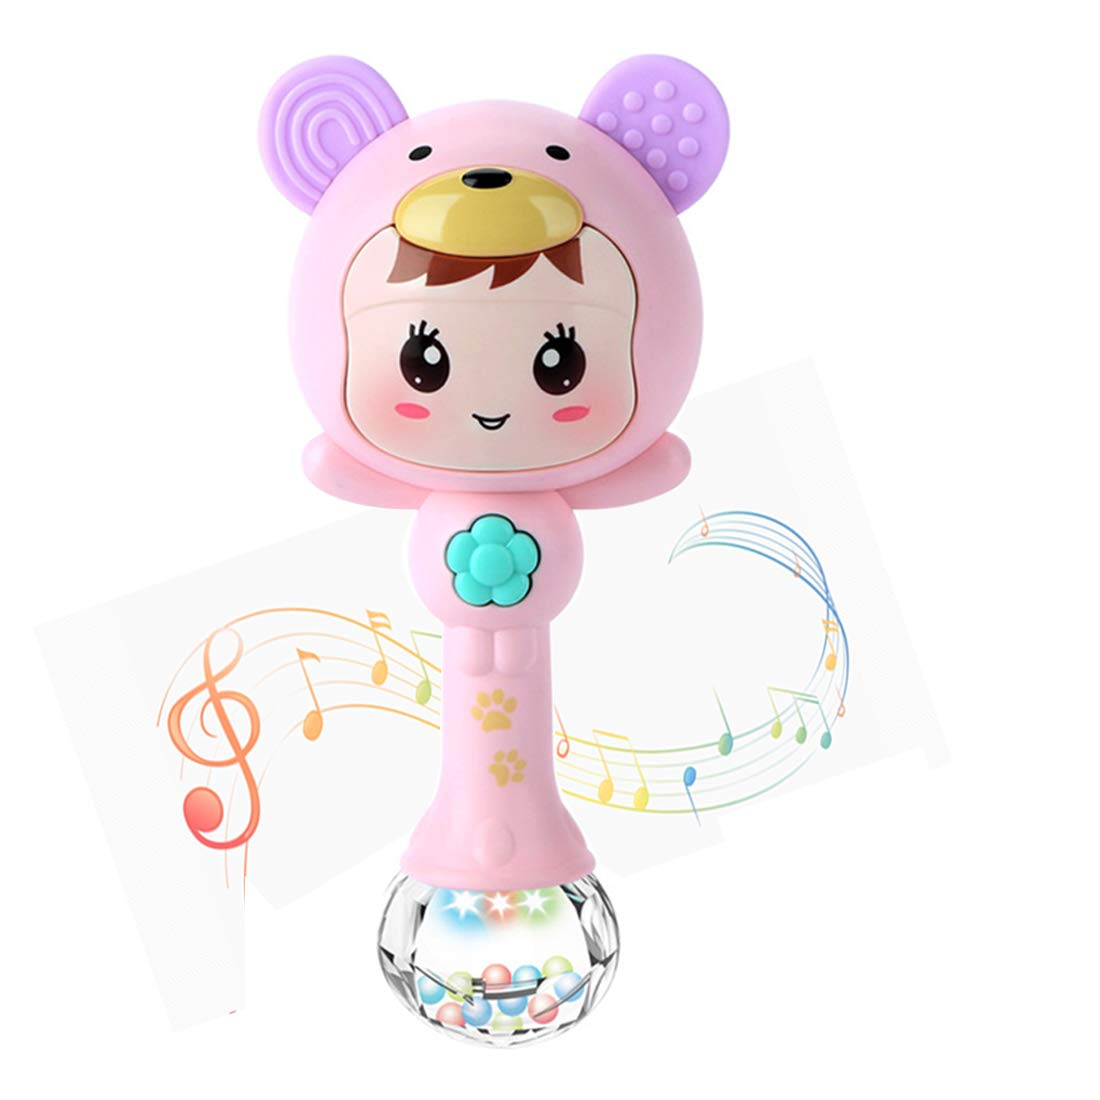 LOFEE Rattle Toy for 3-12 Months Old Baby Girl, Teether for Infants Baby 0-12 Months Old Toy for 6-18 Months Old Baby Girl Musical Toy for 1-3 Year Old Baby Girl 3-9 Month Old Baby Girl Toy